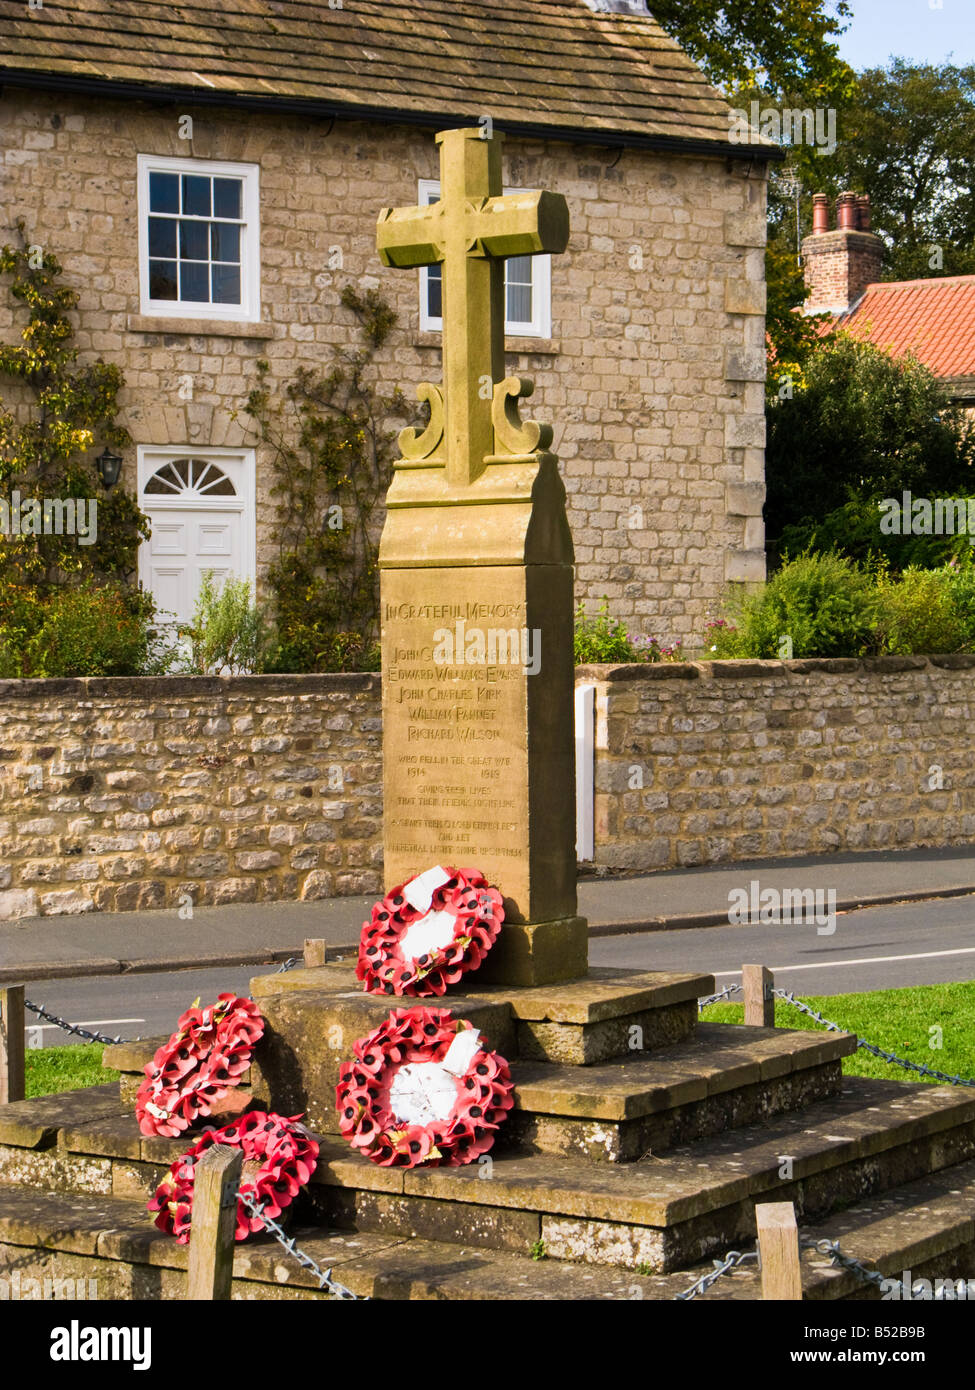 The village war memorial and poppy wreaths at Goldsborough, North Yorkshire, England, UK - Stock Image